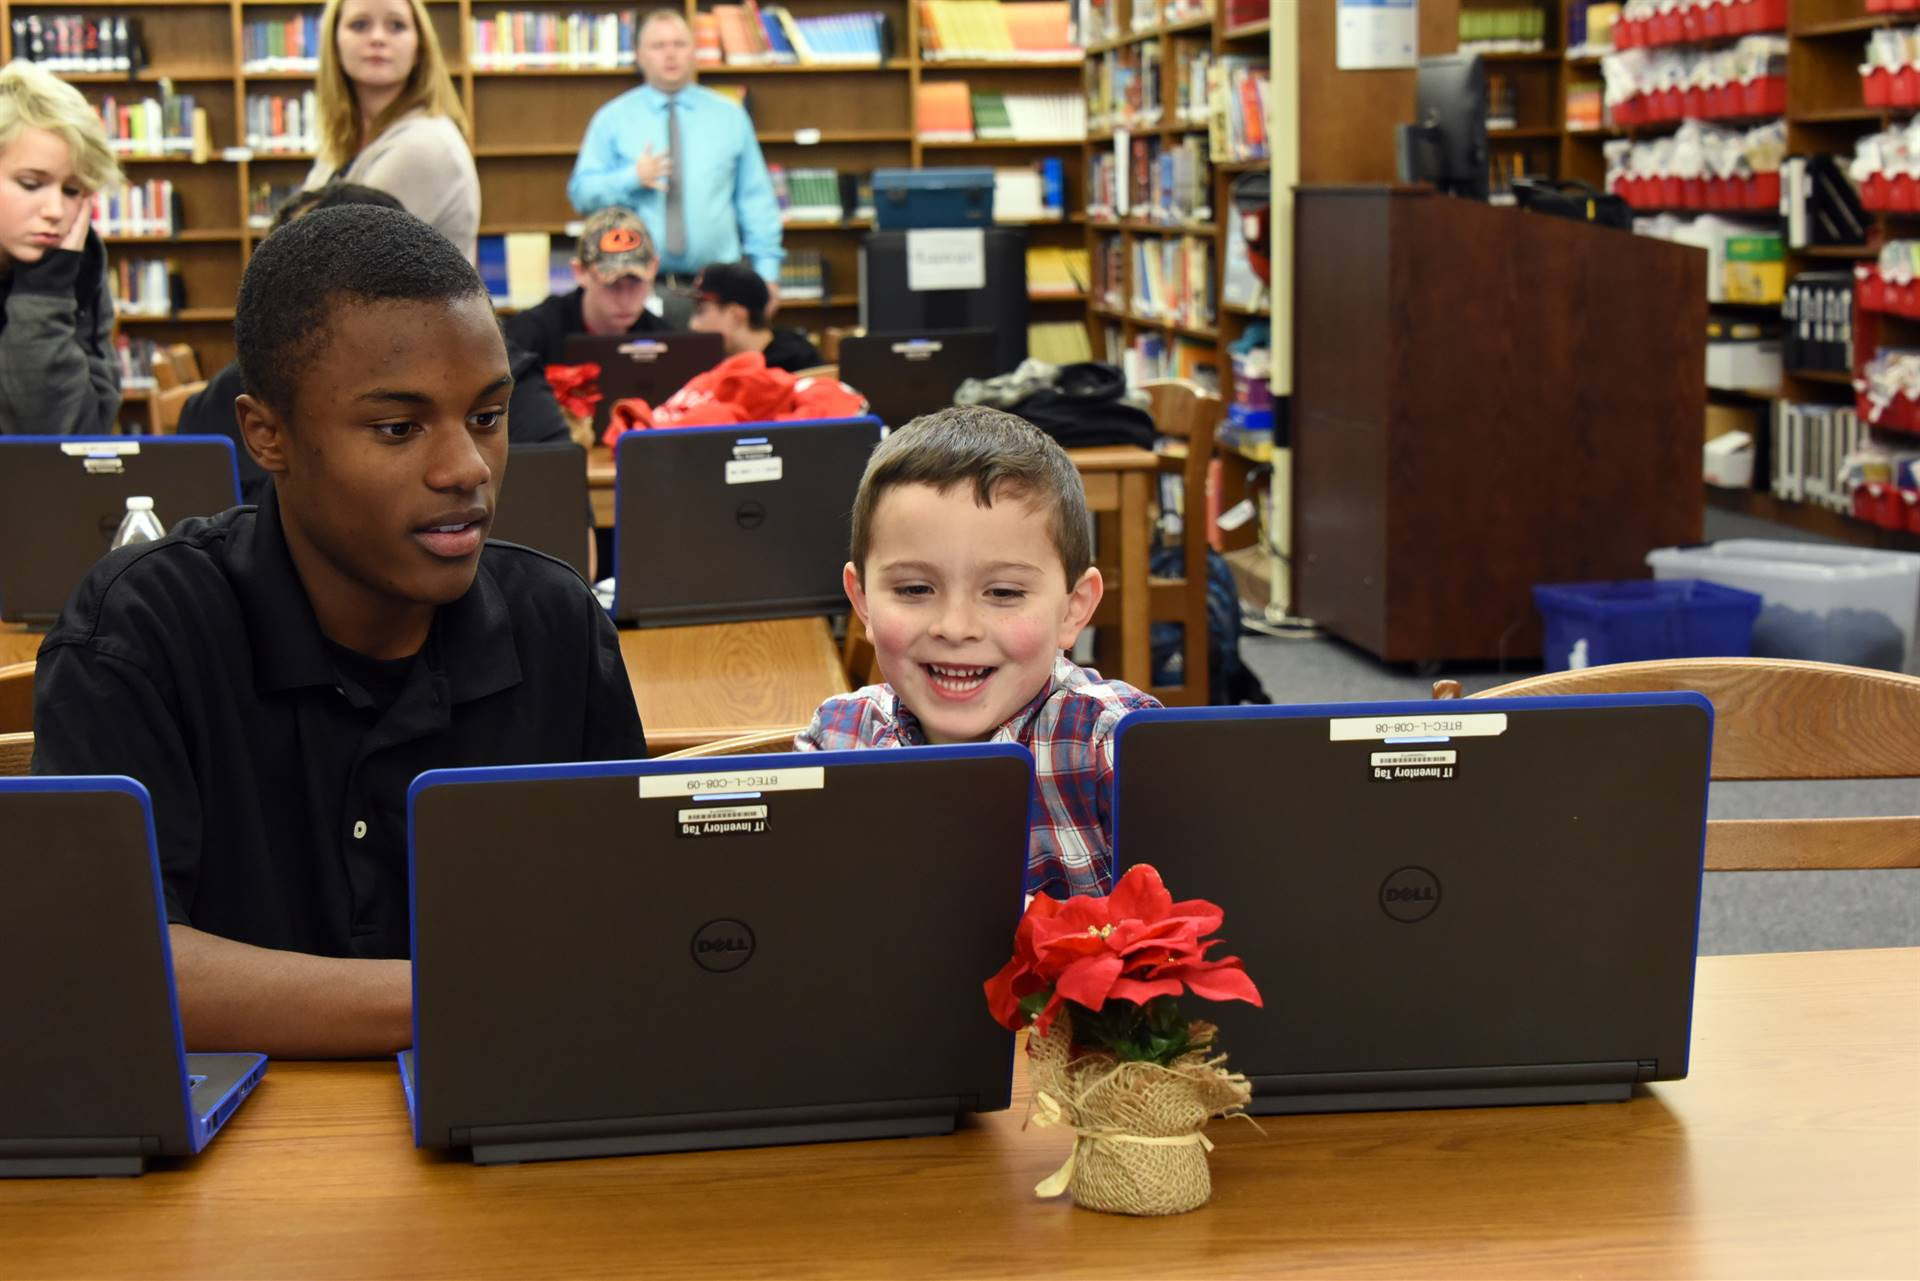 Preschoolers learn coding with PTECH students